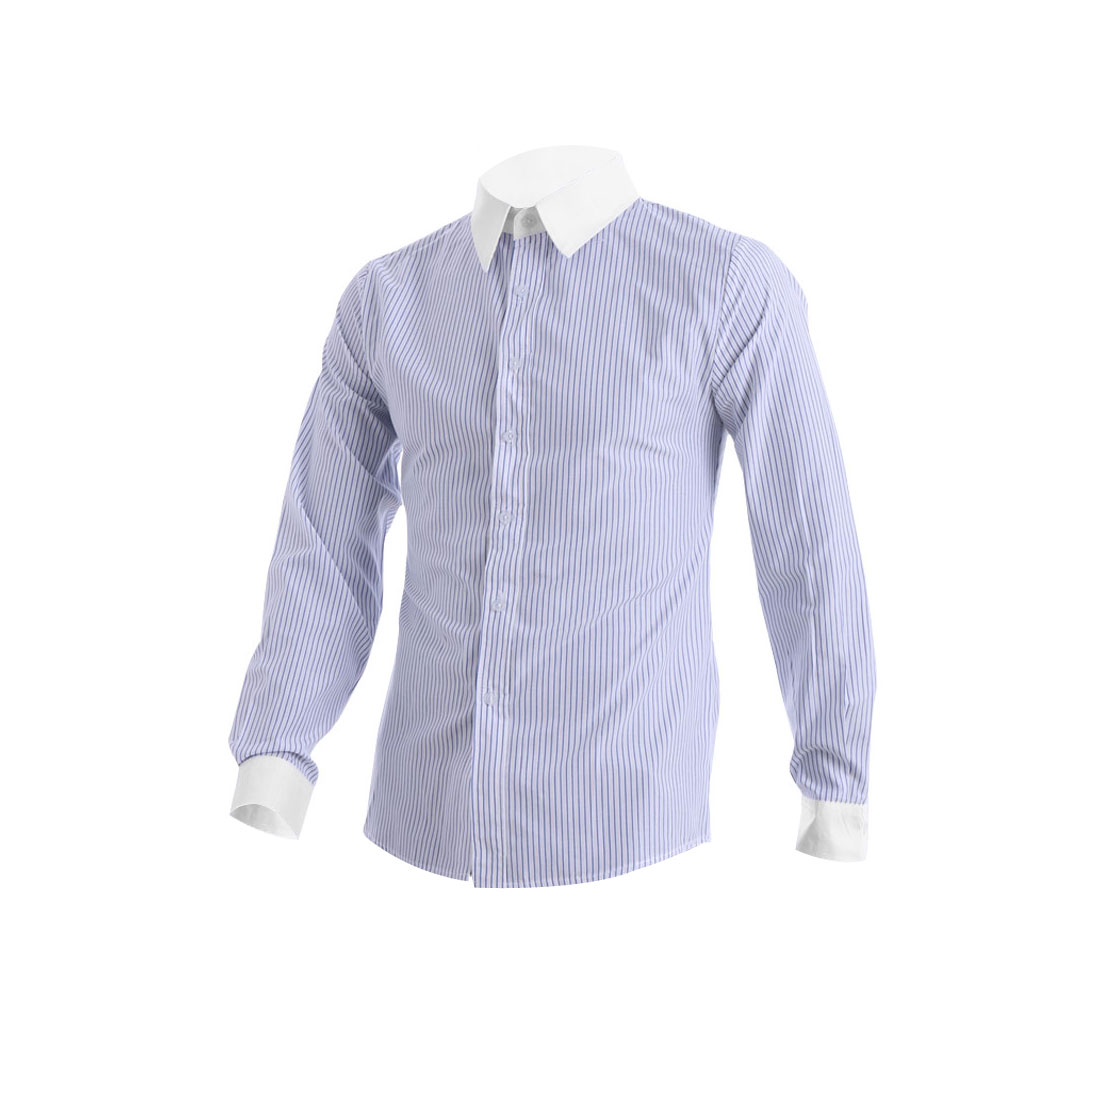 Mens Chic Point Collar Long Sleeve Stripes Pattern Blue White Shirt M